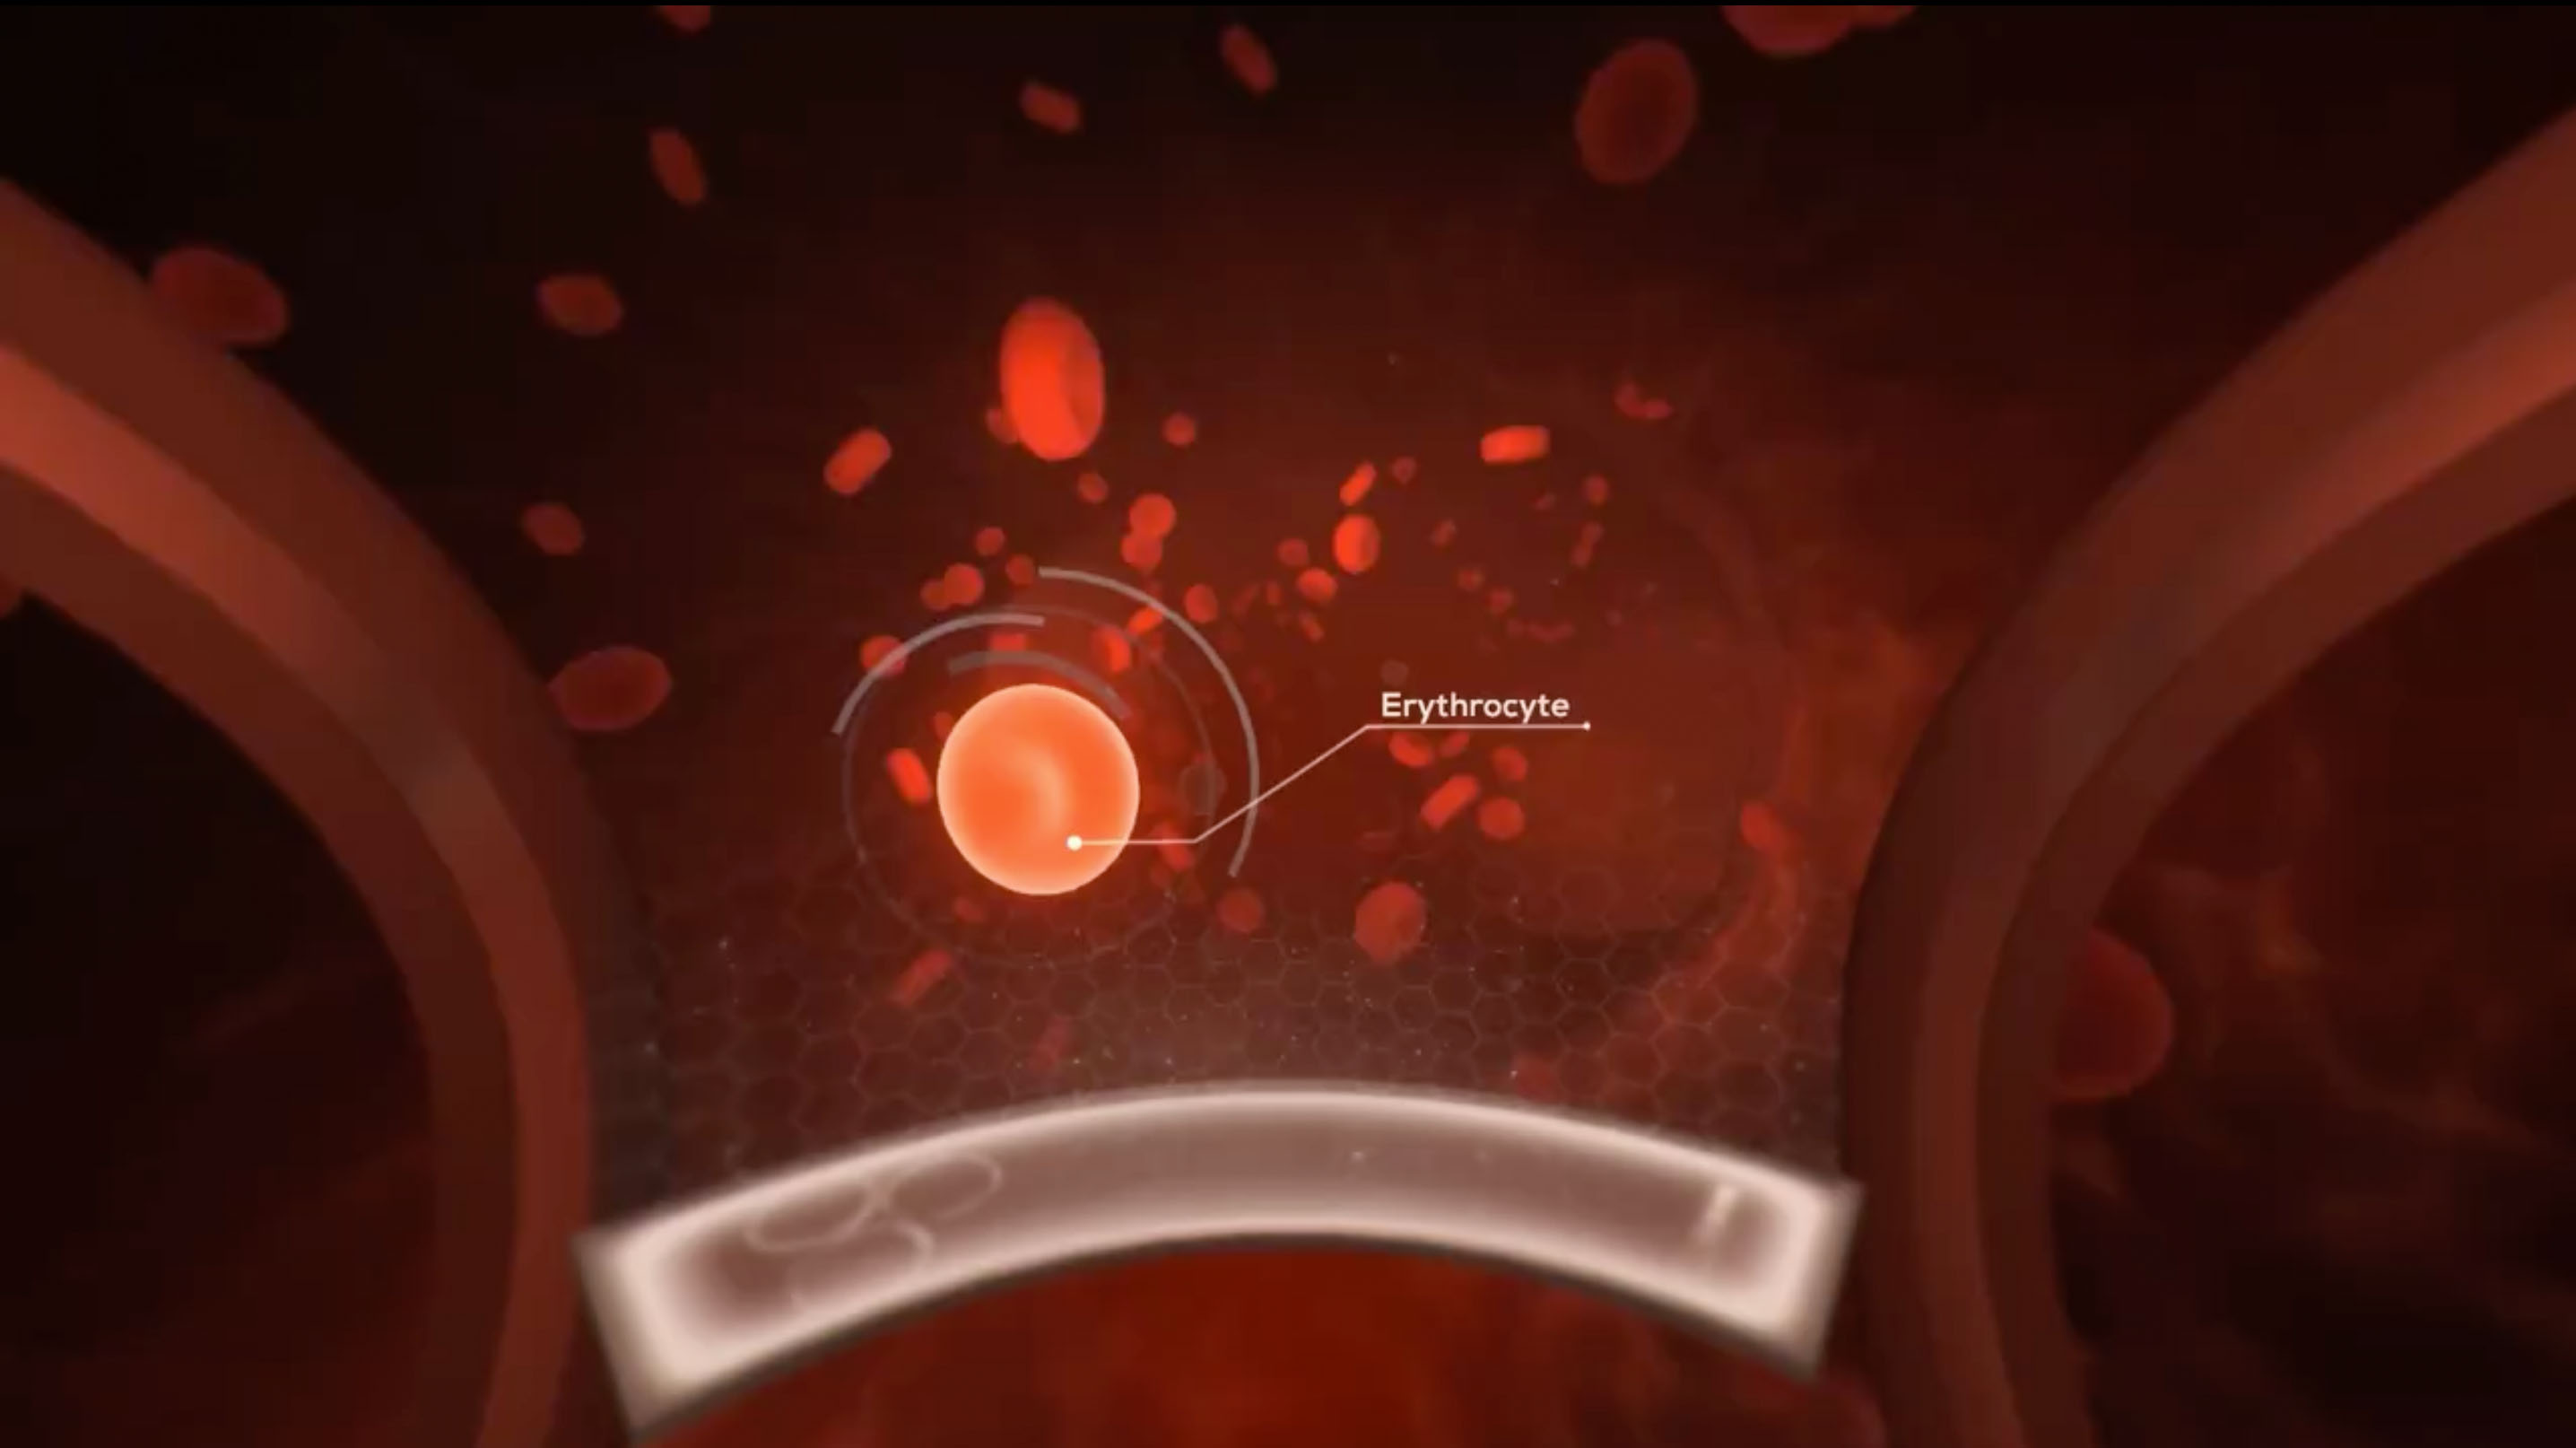 The Virtual Reality Education Erythrocyte